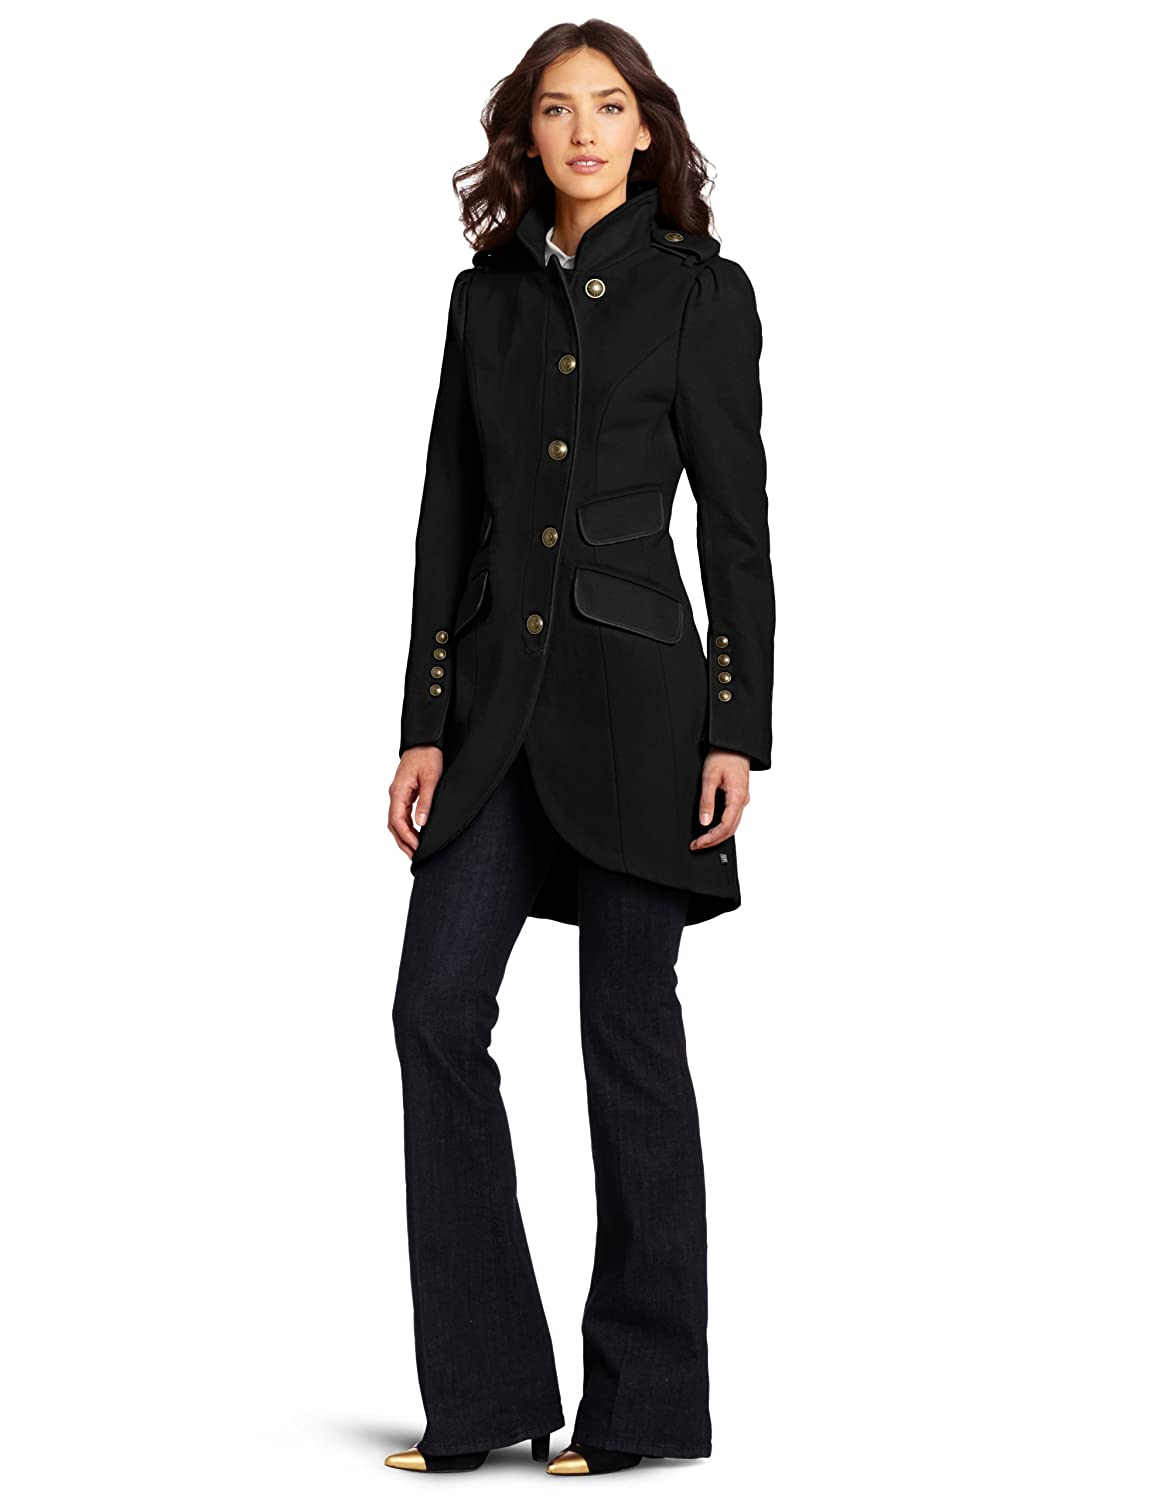 Up to 75% Off Outerwear for Women & Men